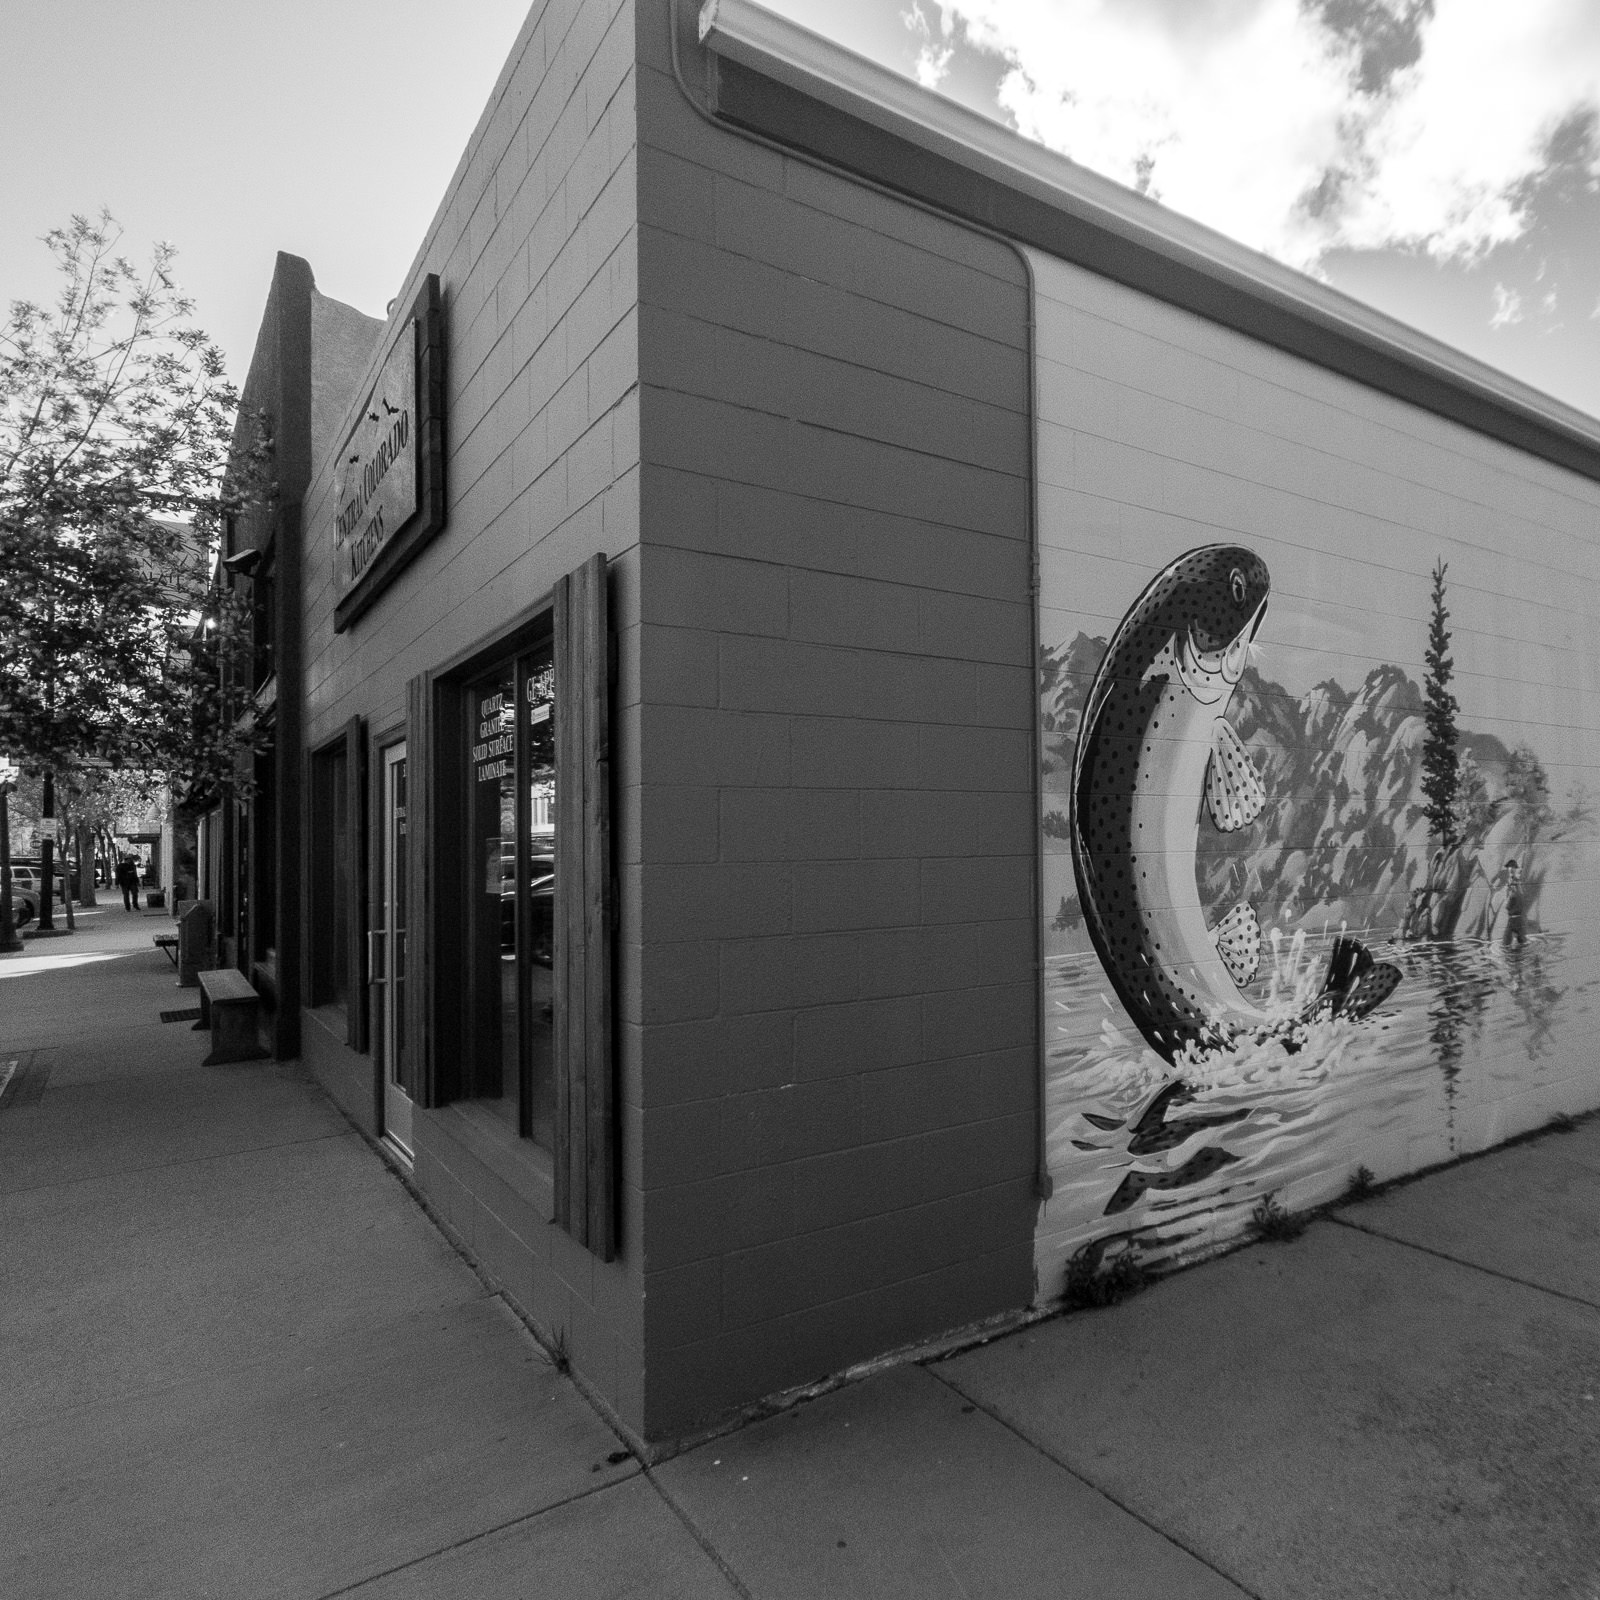 Day 152- 365 Day B&W Photo Challenge - Fishing is one of the great activities in the Arkansas River Valley highlighted with this street art in Buena Visat, Colorado - Google Pixel 3, Moment Tele Lens - Acros R Film Simulation